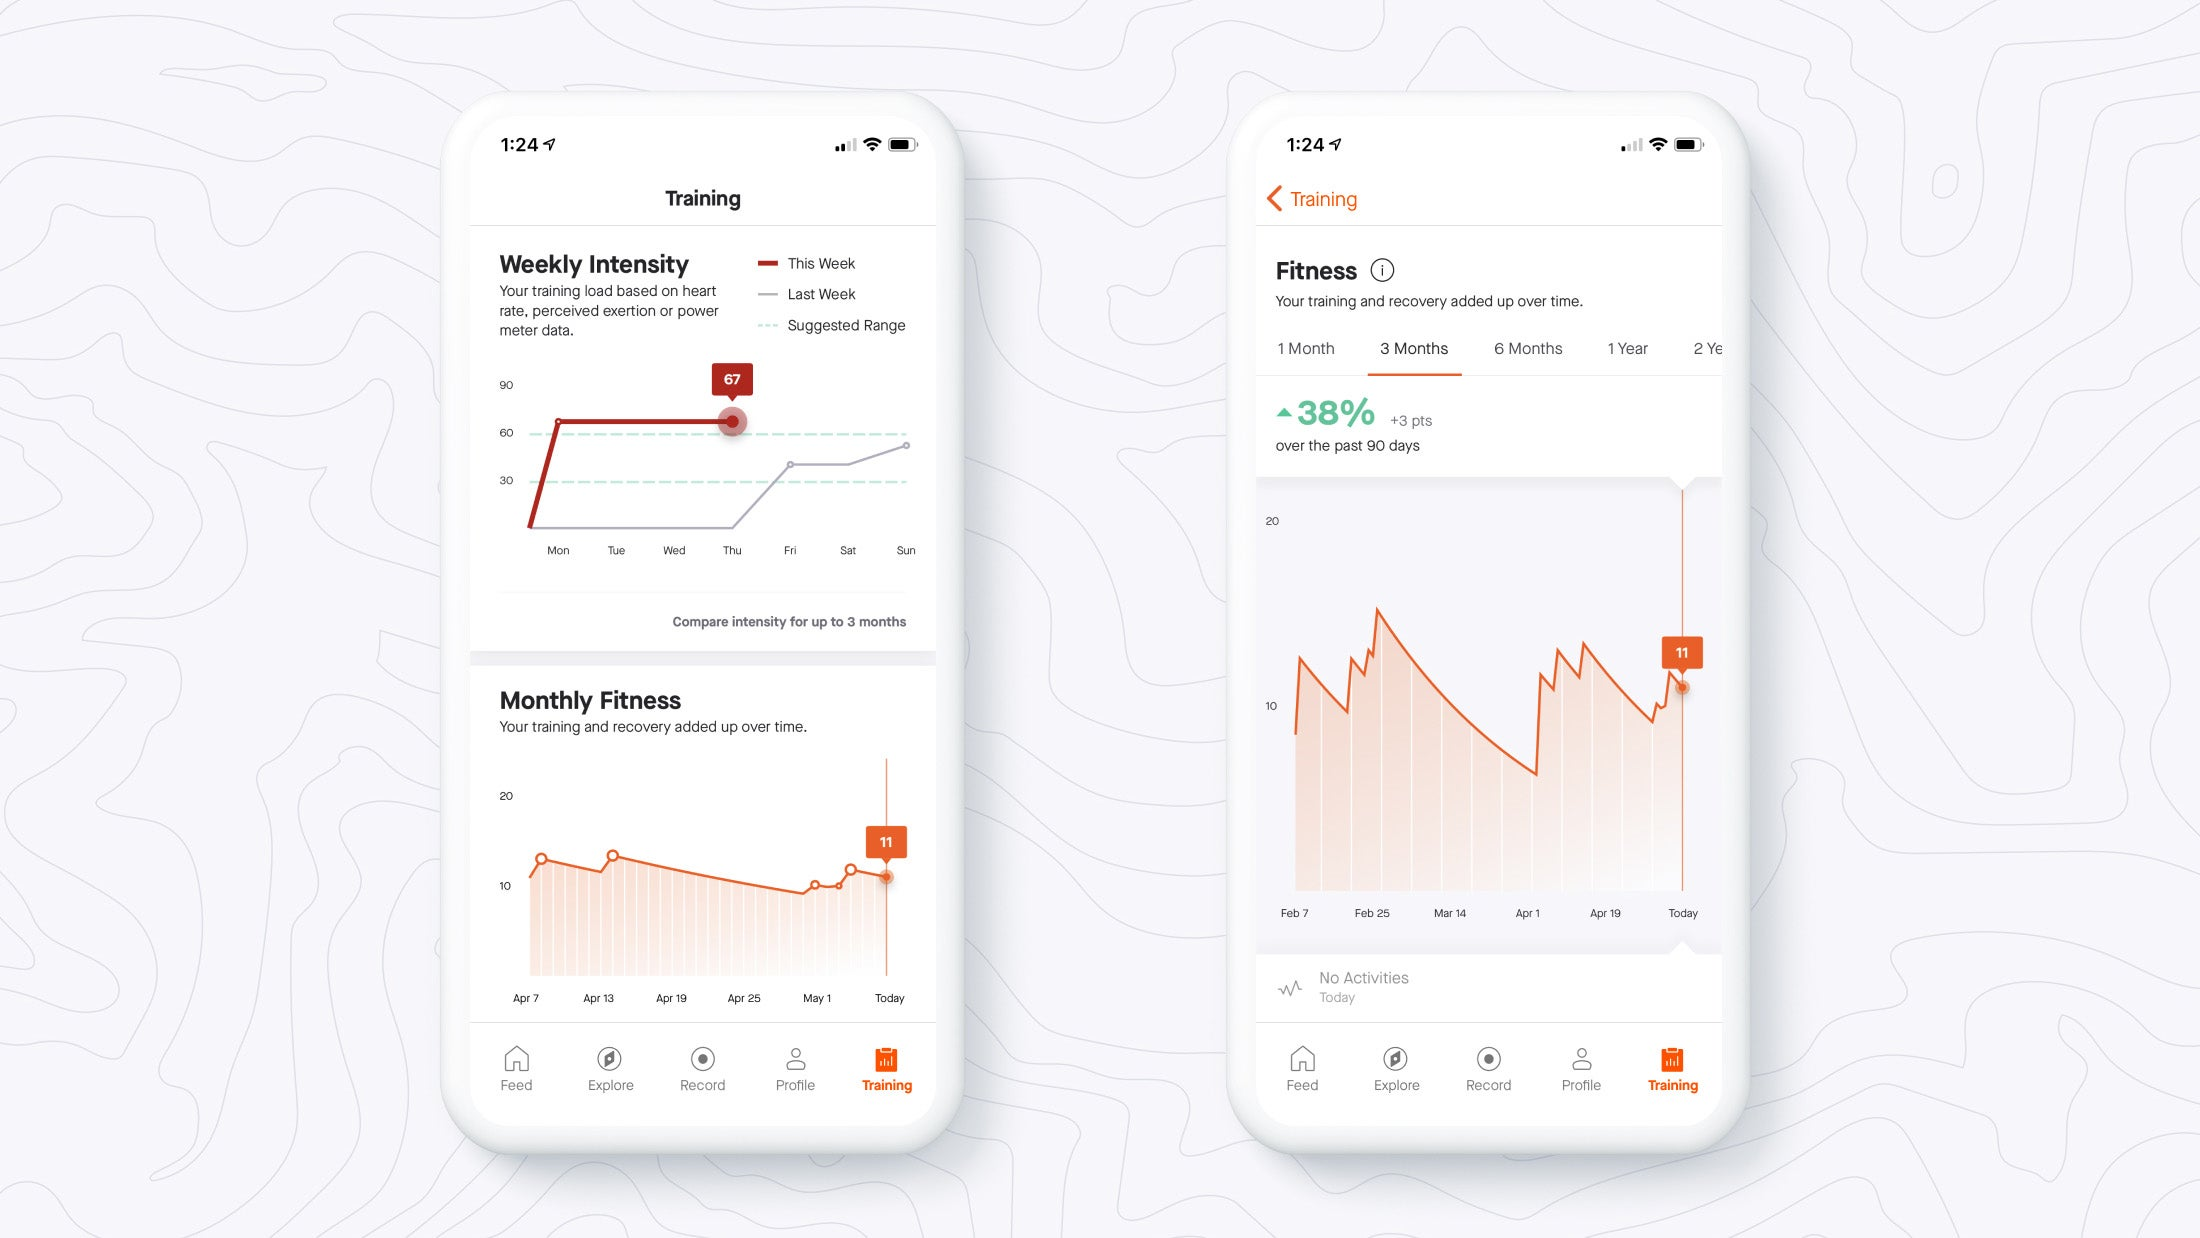 Strava Summit features shown rebranded as Training